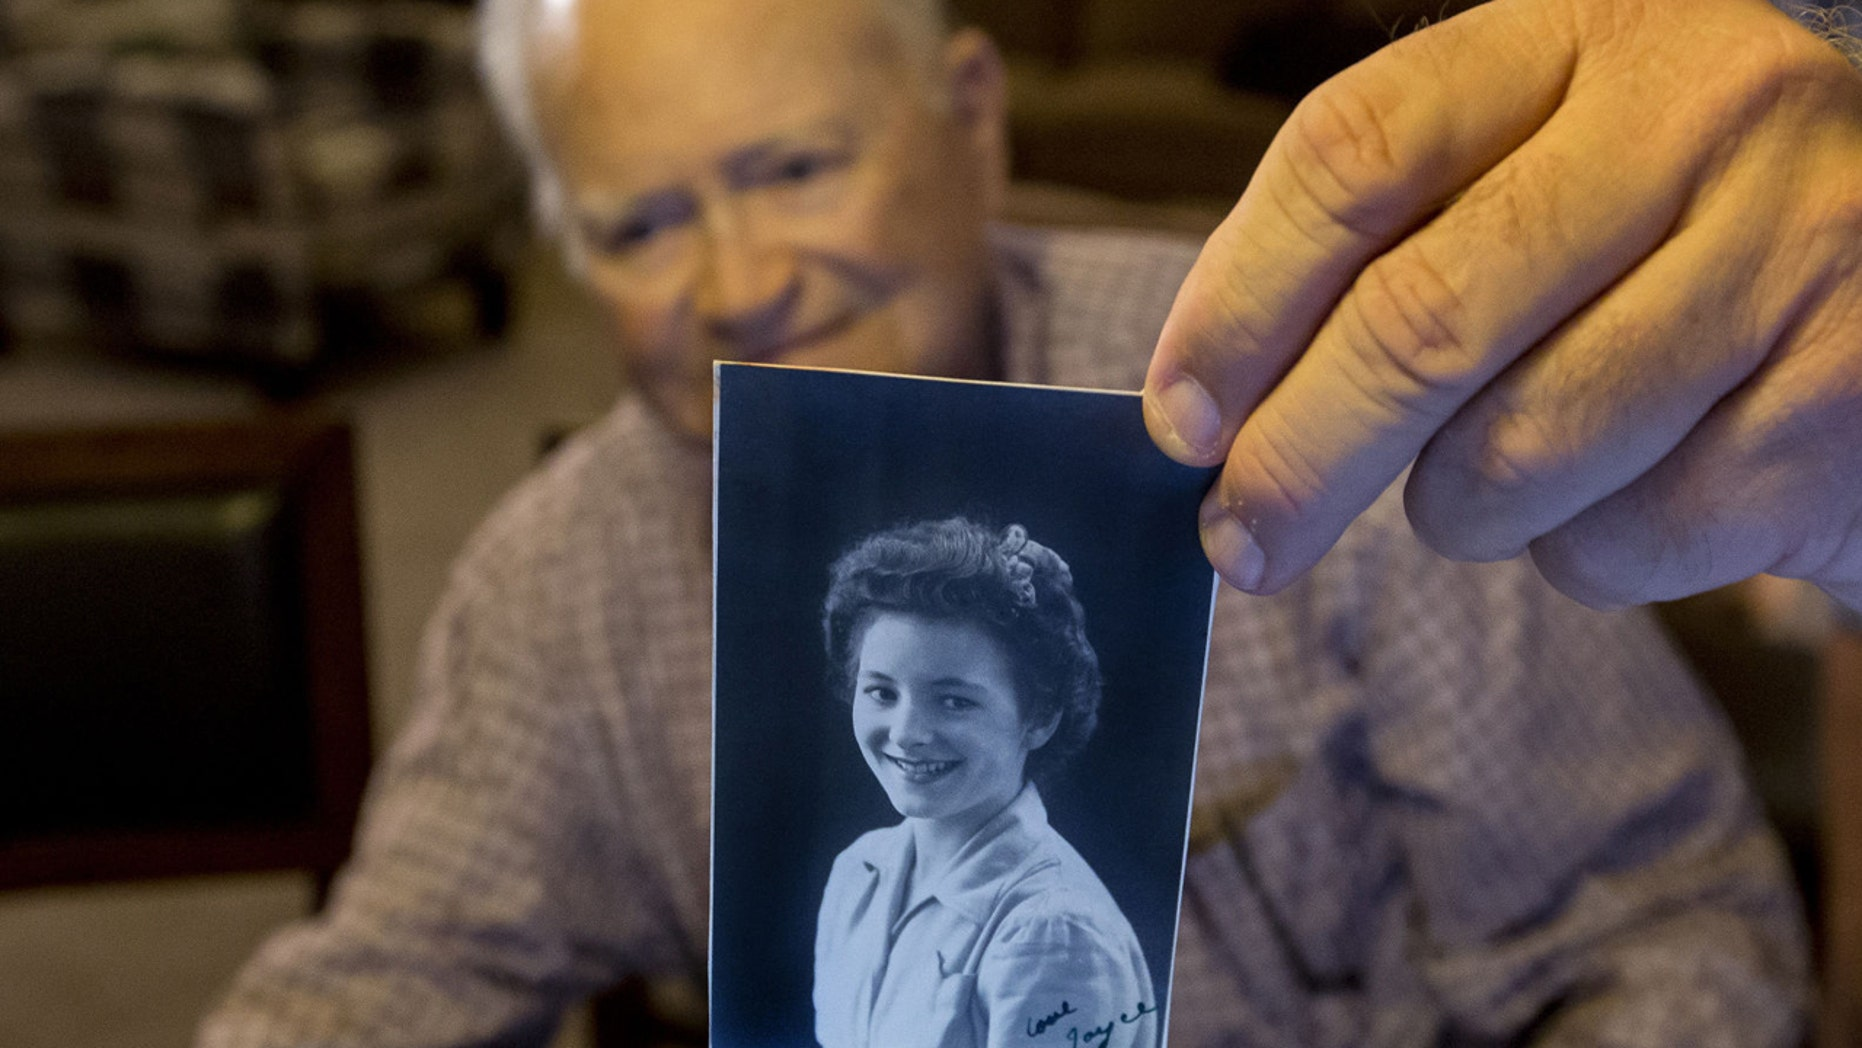 FILE - In this Nov. 6, 2015 file photo, Norwood Thomas, holds up a photo of with Joyce Morris at his home in Virginia Beach, Va. Thomas arrived in Australia Wednesday to reunite with Morris, his girlfriend during World War II. (Bill Tiernan/The Virginian-Pilot via AP)